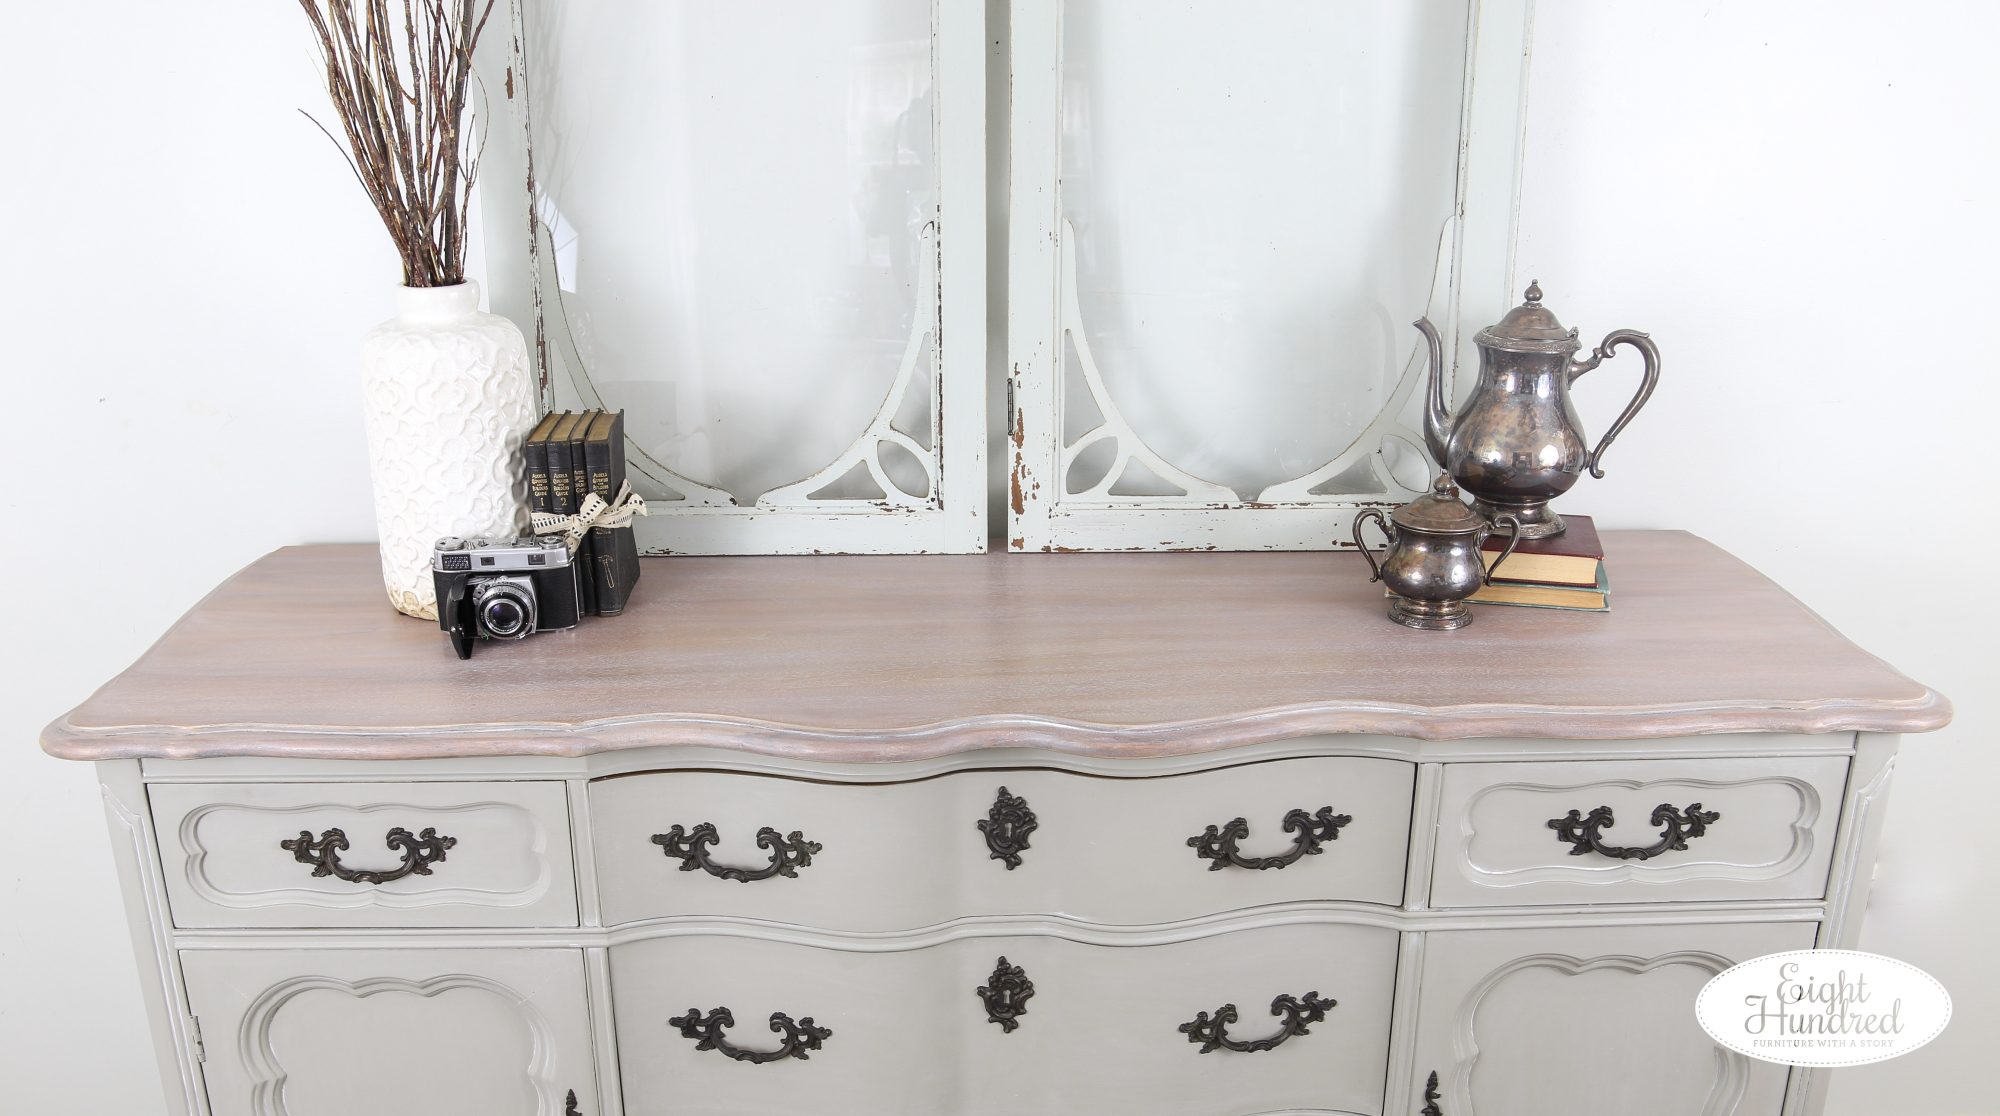 High performance topcoat in satin, whitewash glaze effects, graystone water based wood stain, white wax by miss mustard seed, french provincial buffet